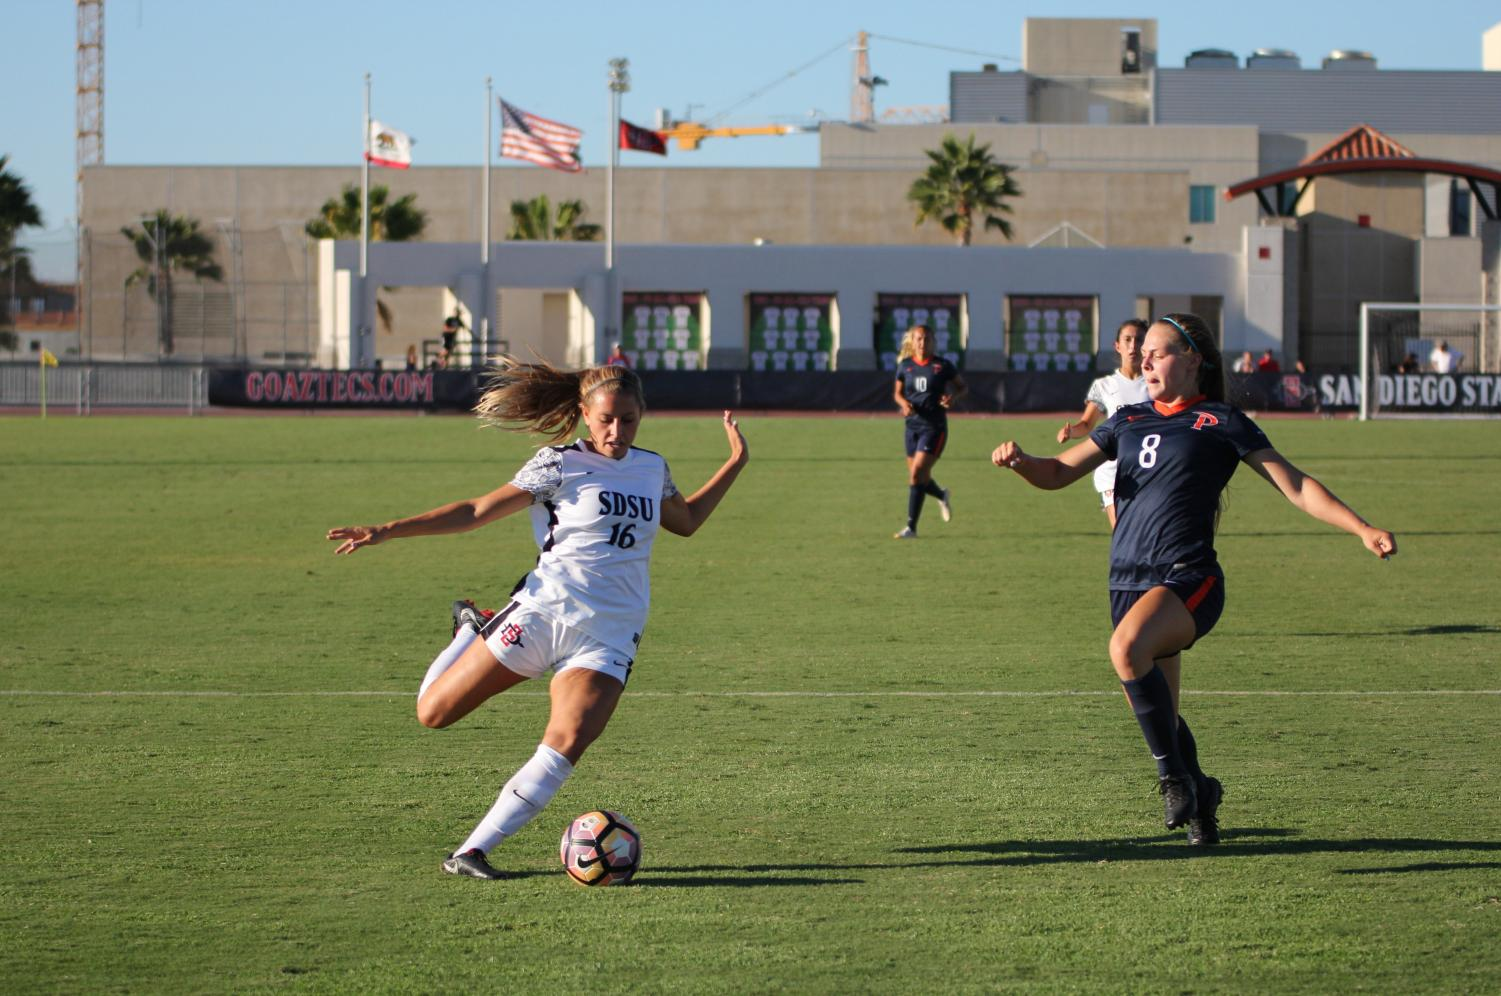 Junior forward Darcy Weiser looks to score during the second half of the Aztecs 1-0 loss against Pepperdine University on Sept. 14 at the SDSU Sports Deck.